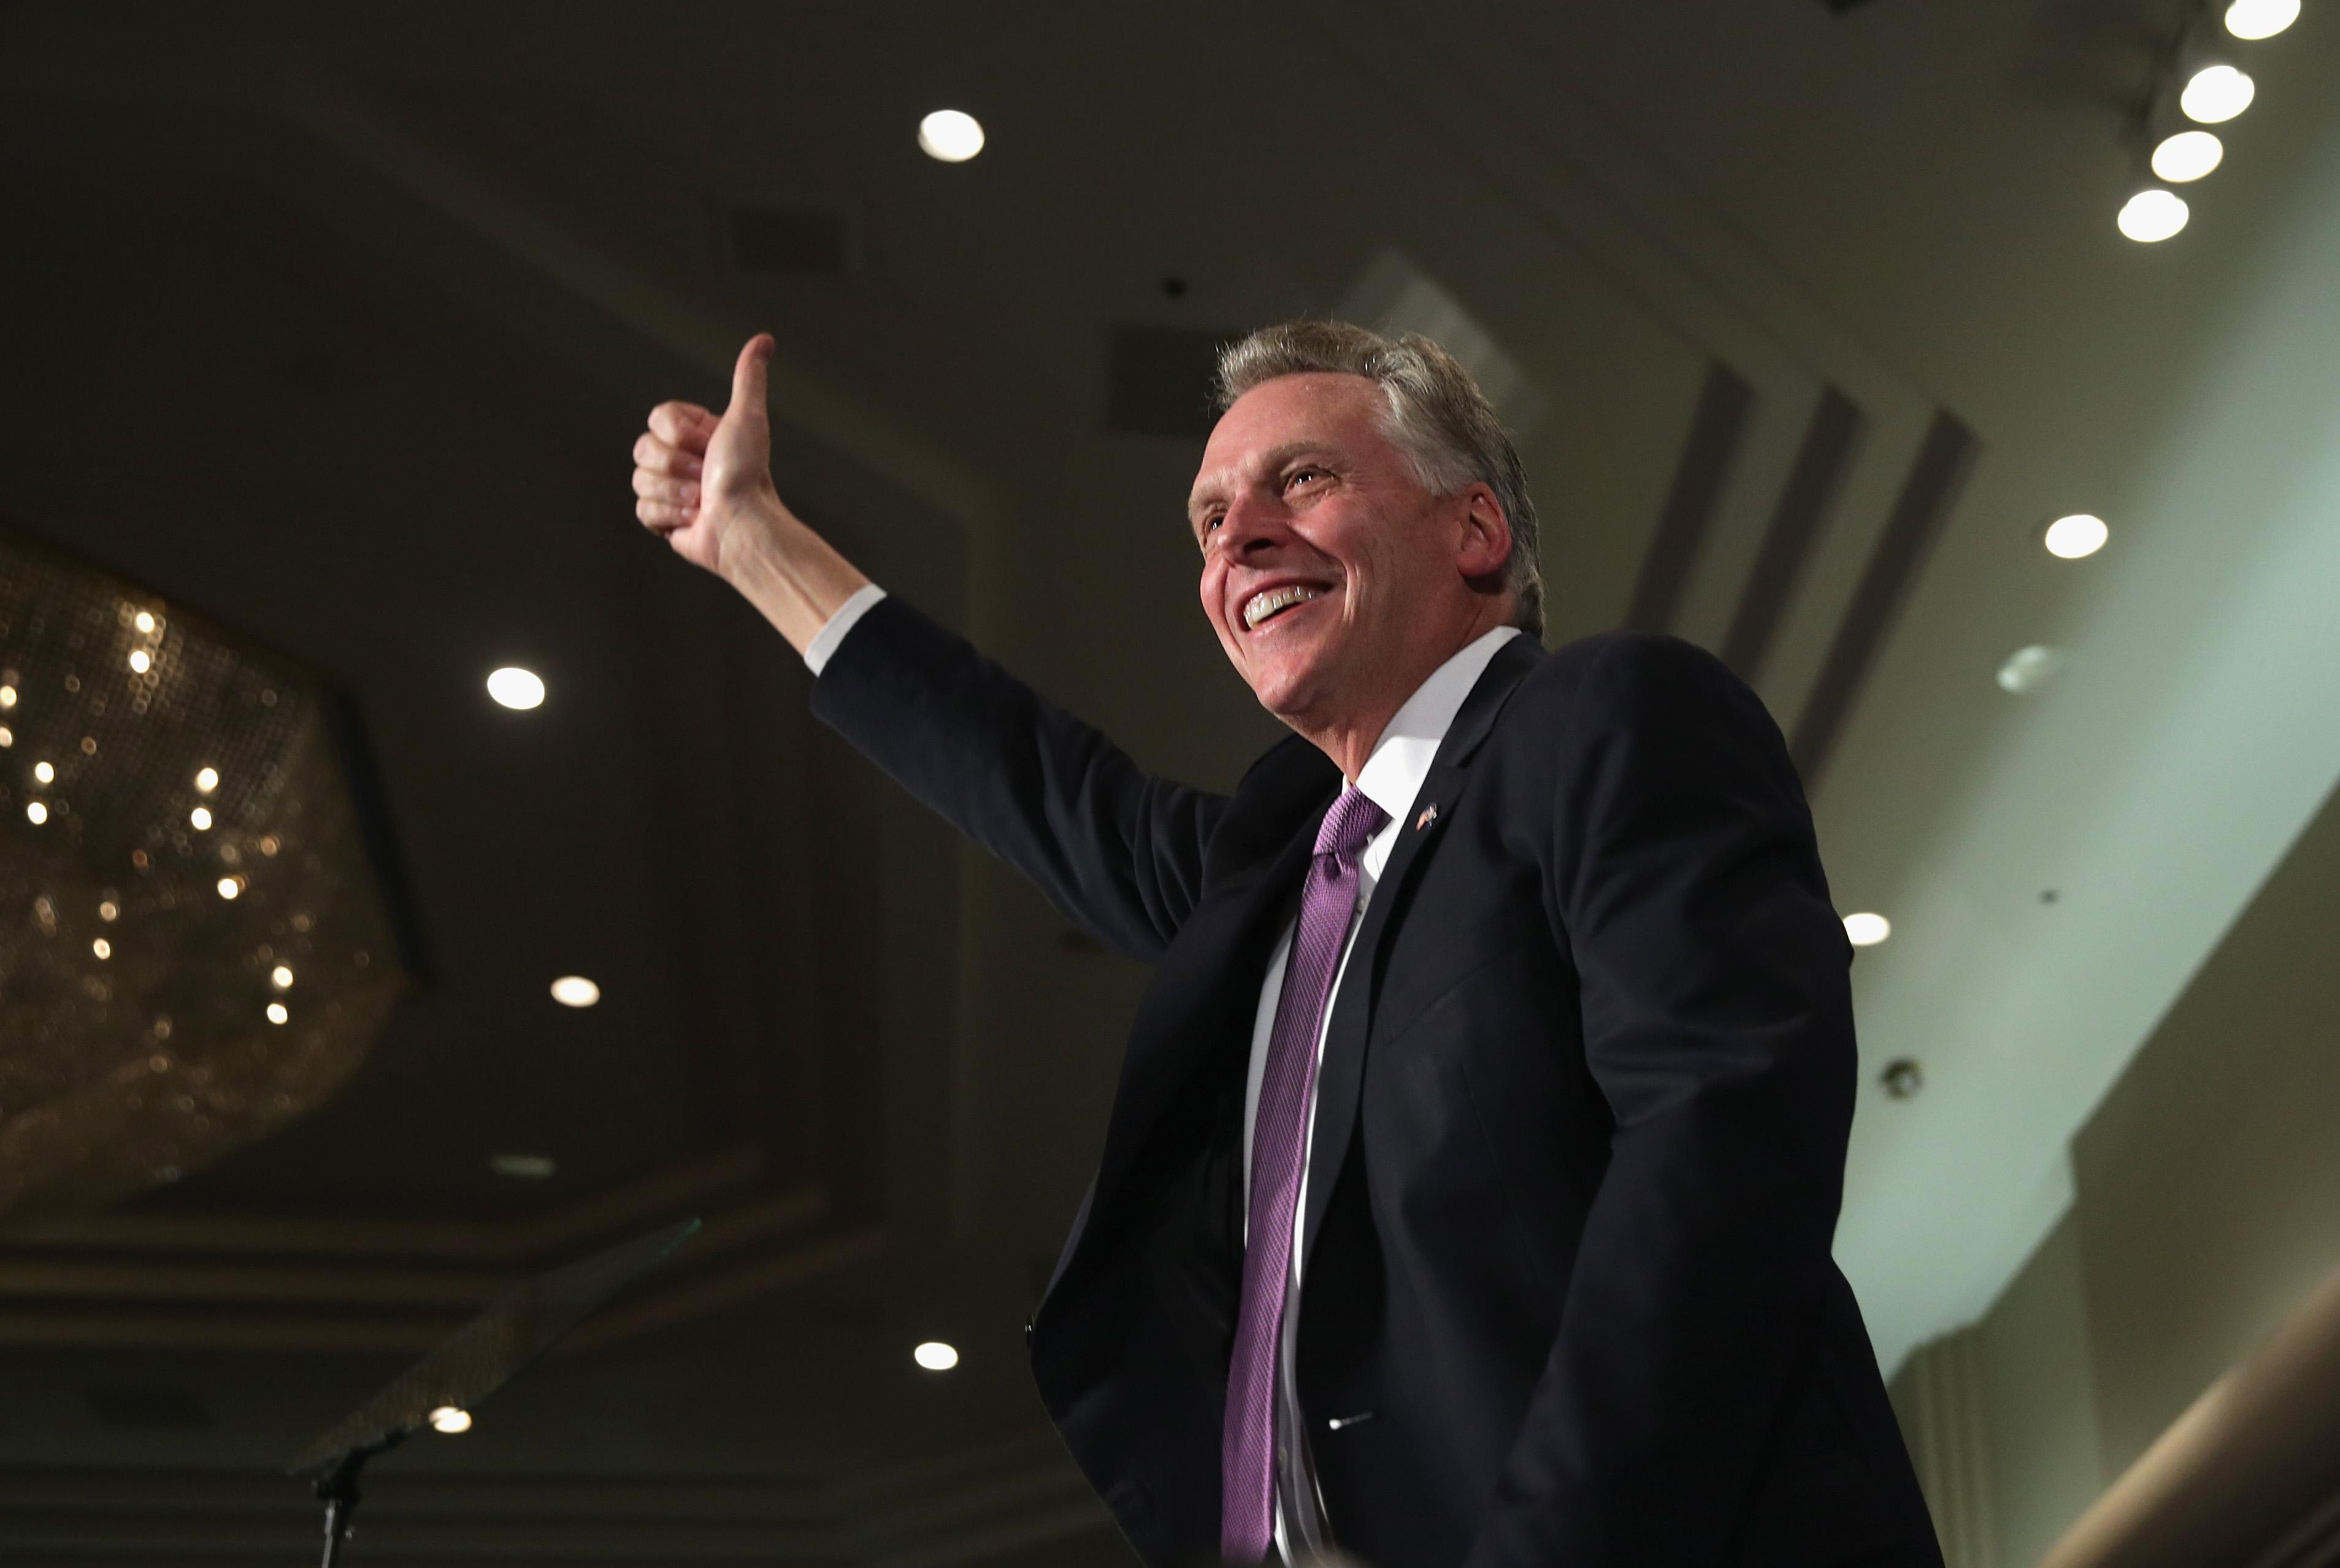 Virginia Gubernatorial Candidate Terry McAuliffe Hosts Election Night Gathering